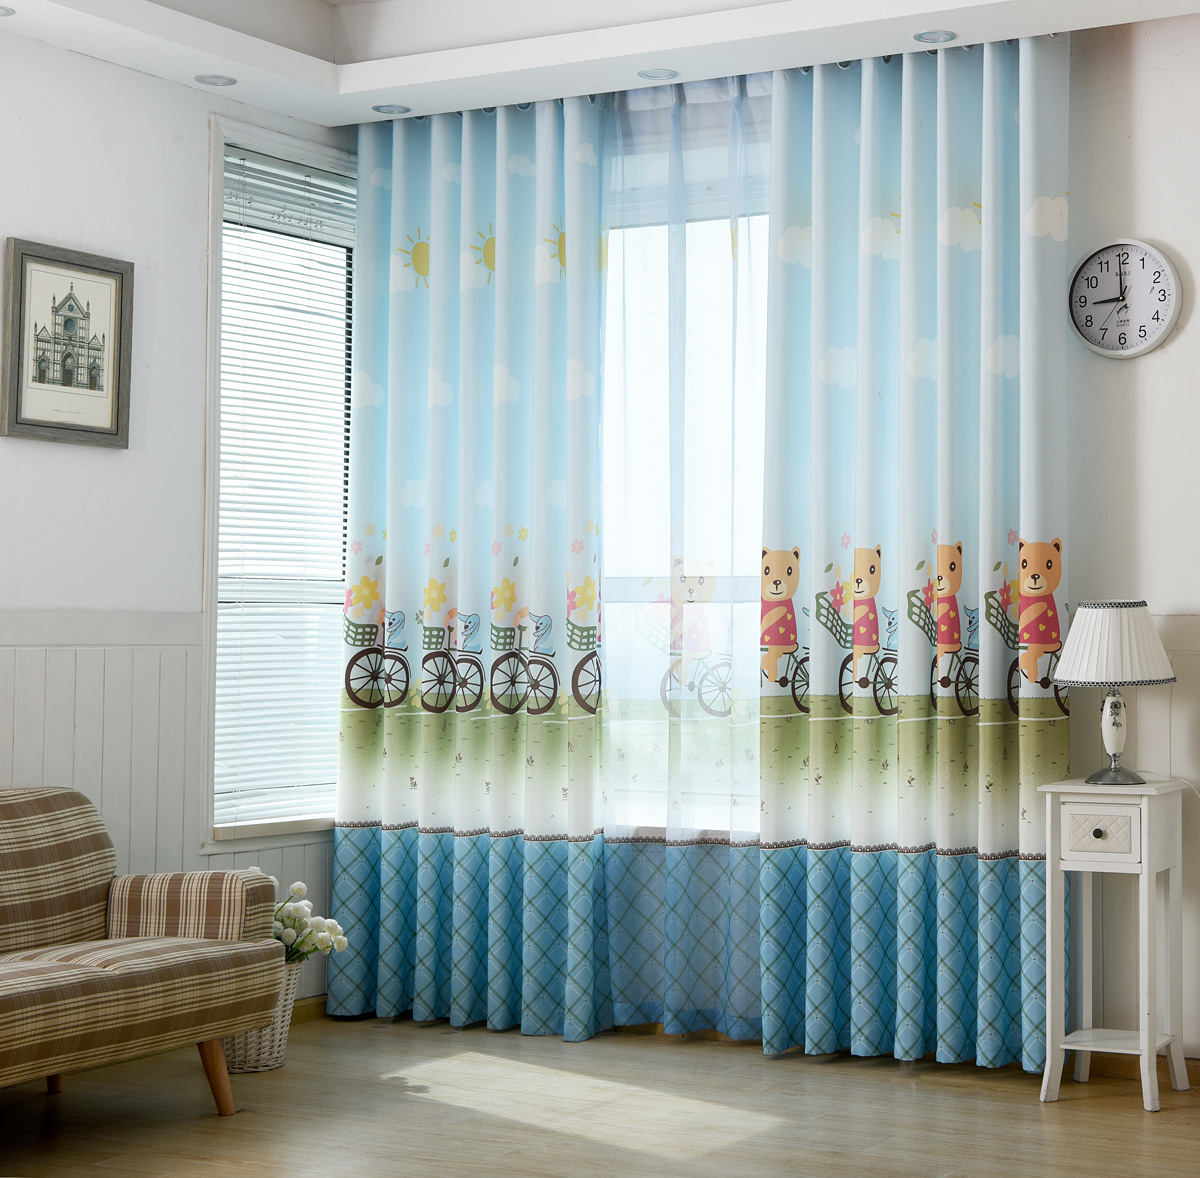 custom interior example curtains fashions curtain